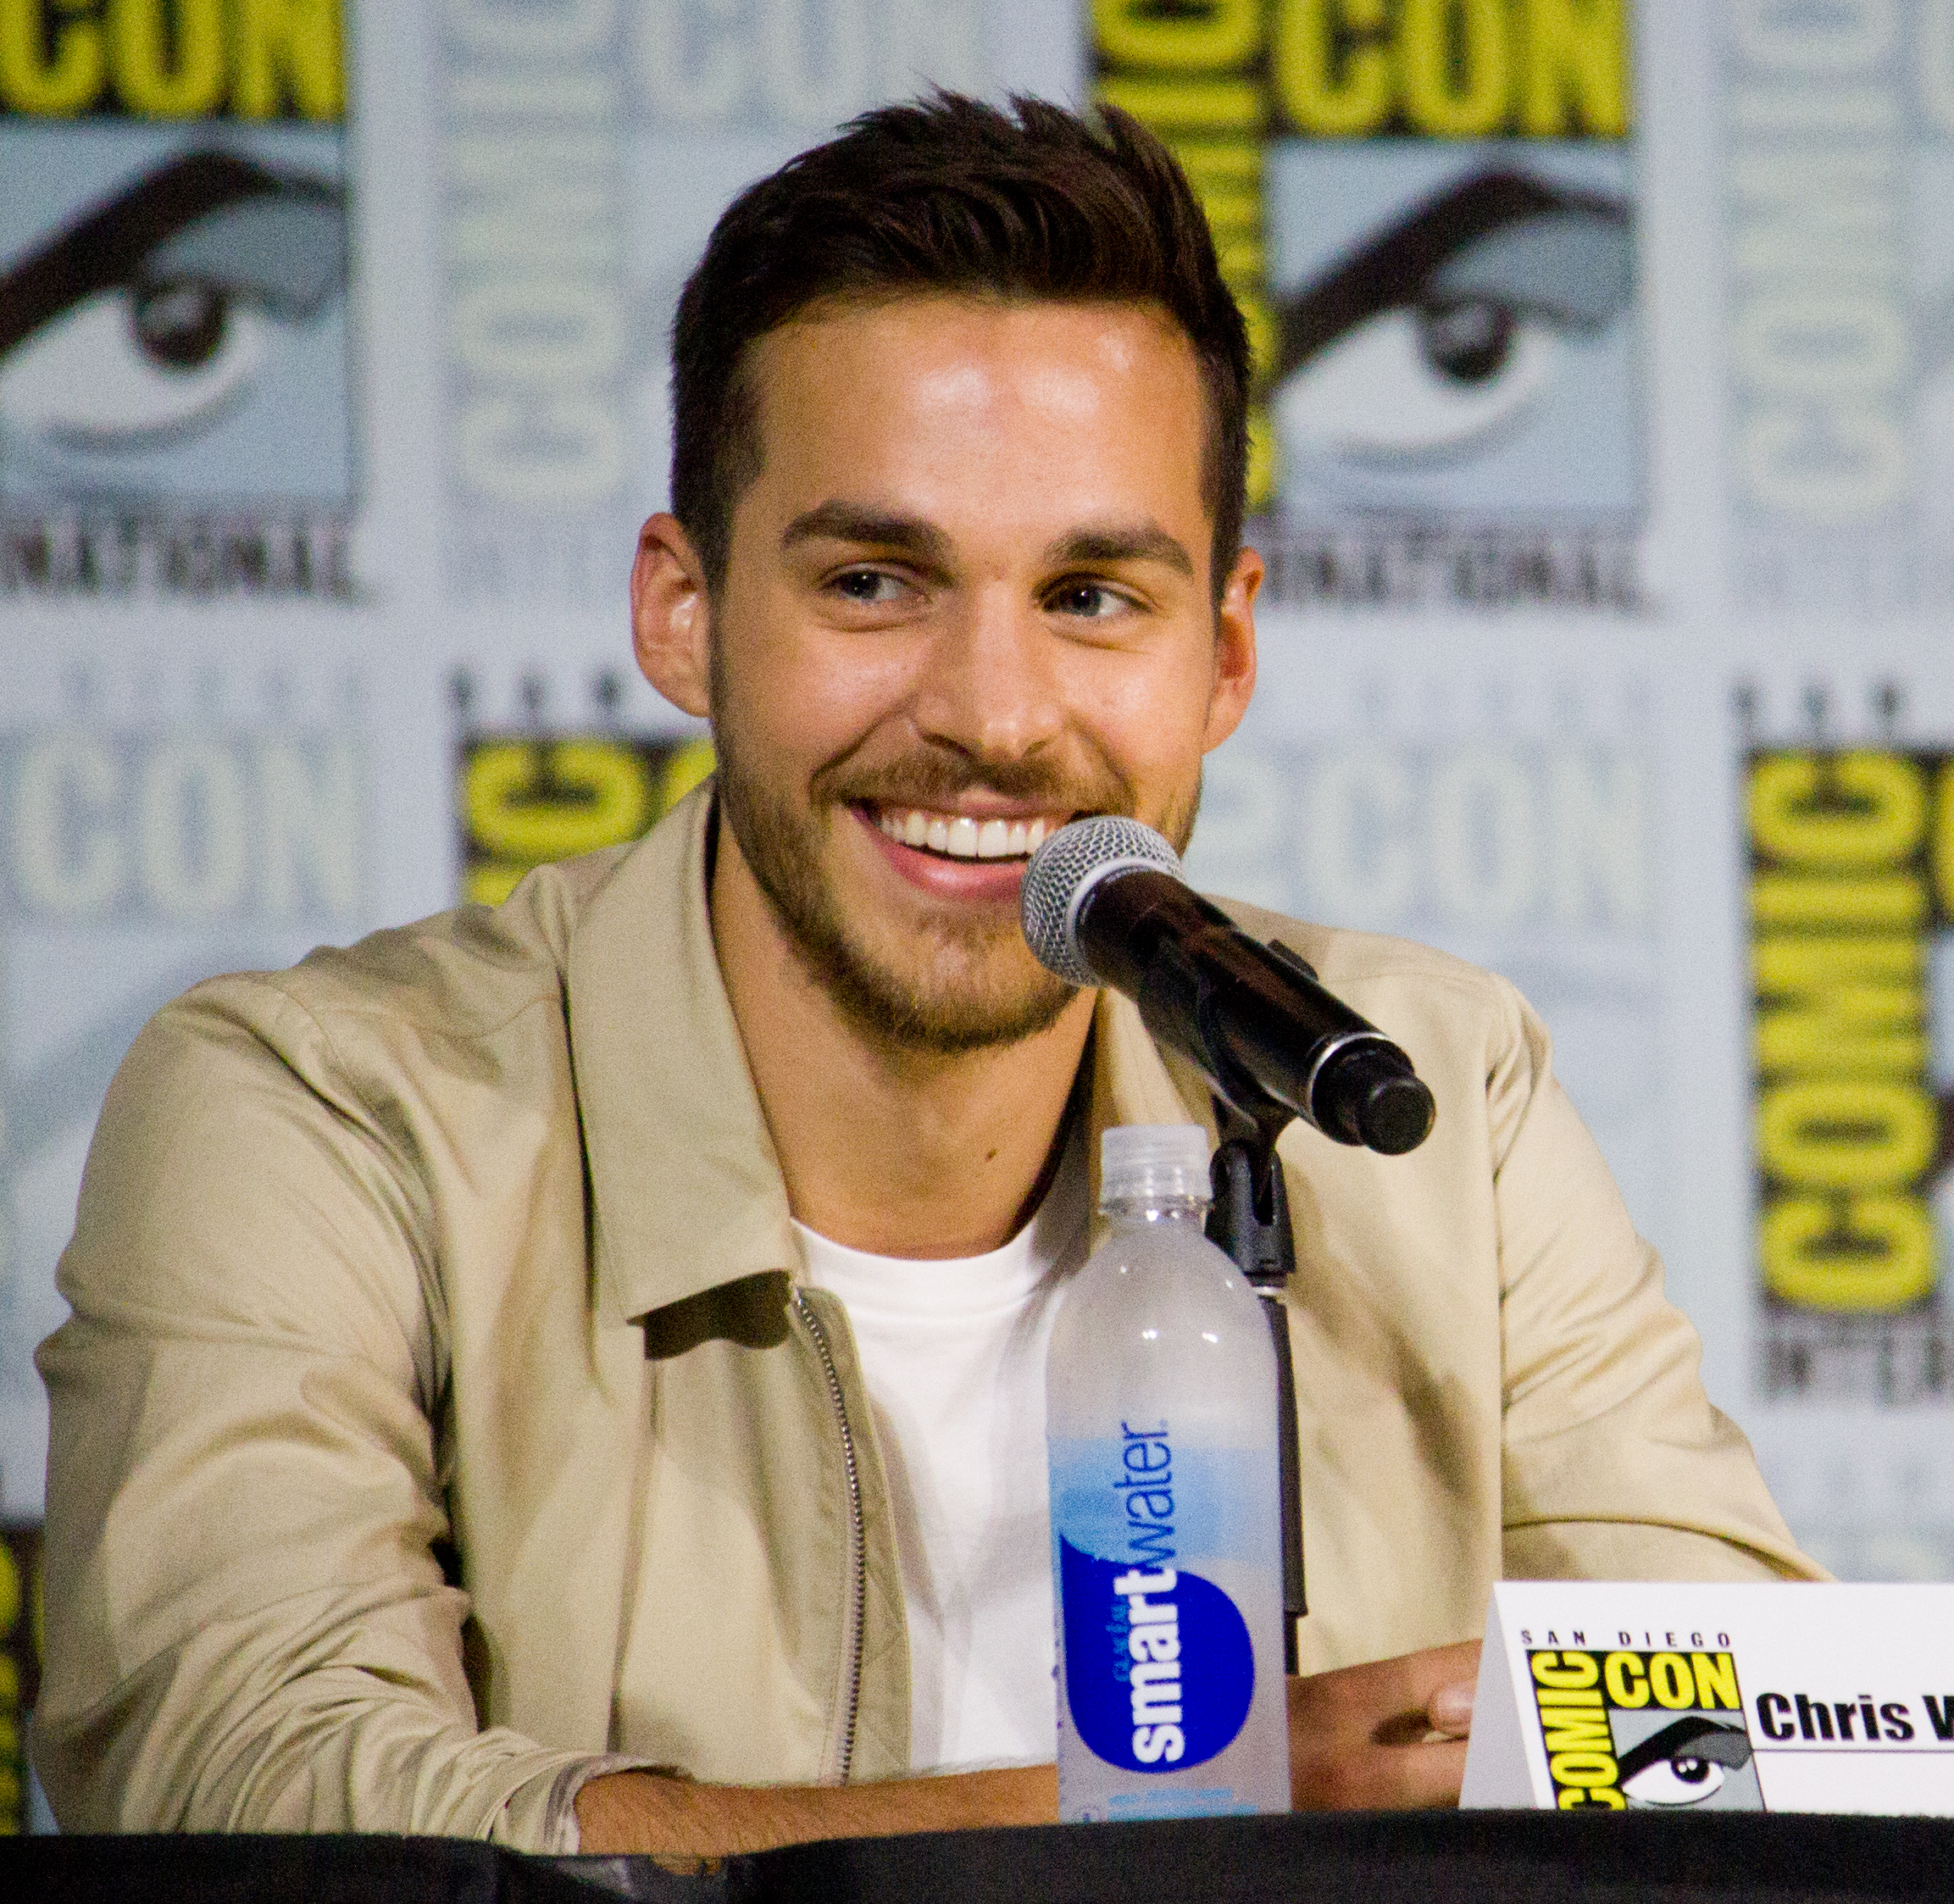 Chris wood actor wikipedia chris wood sdcc 2017g nvjuhfo Image collections